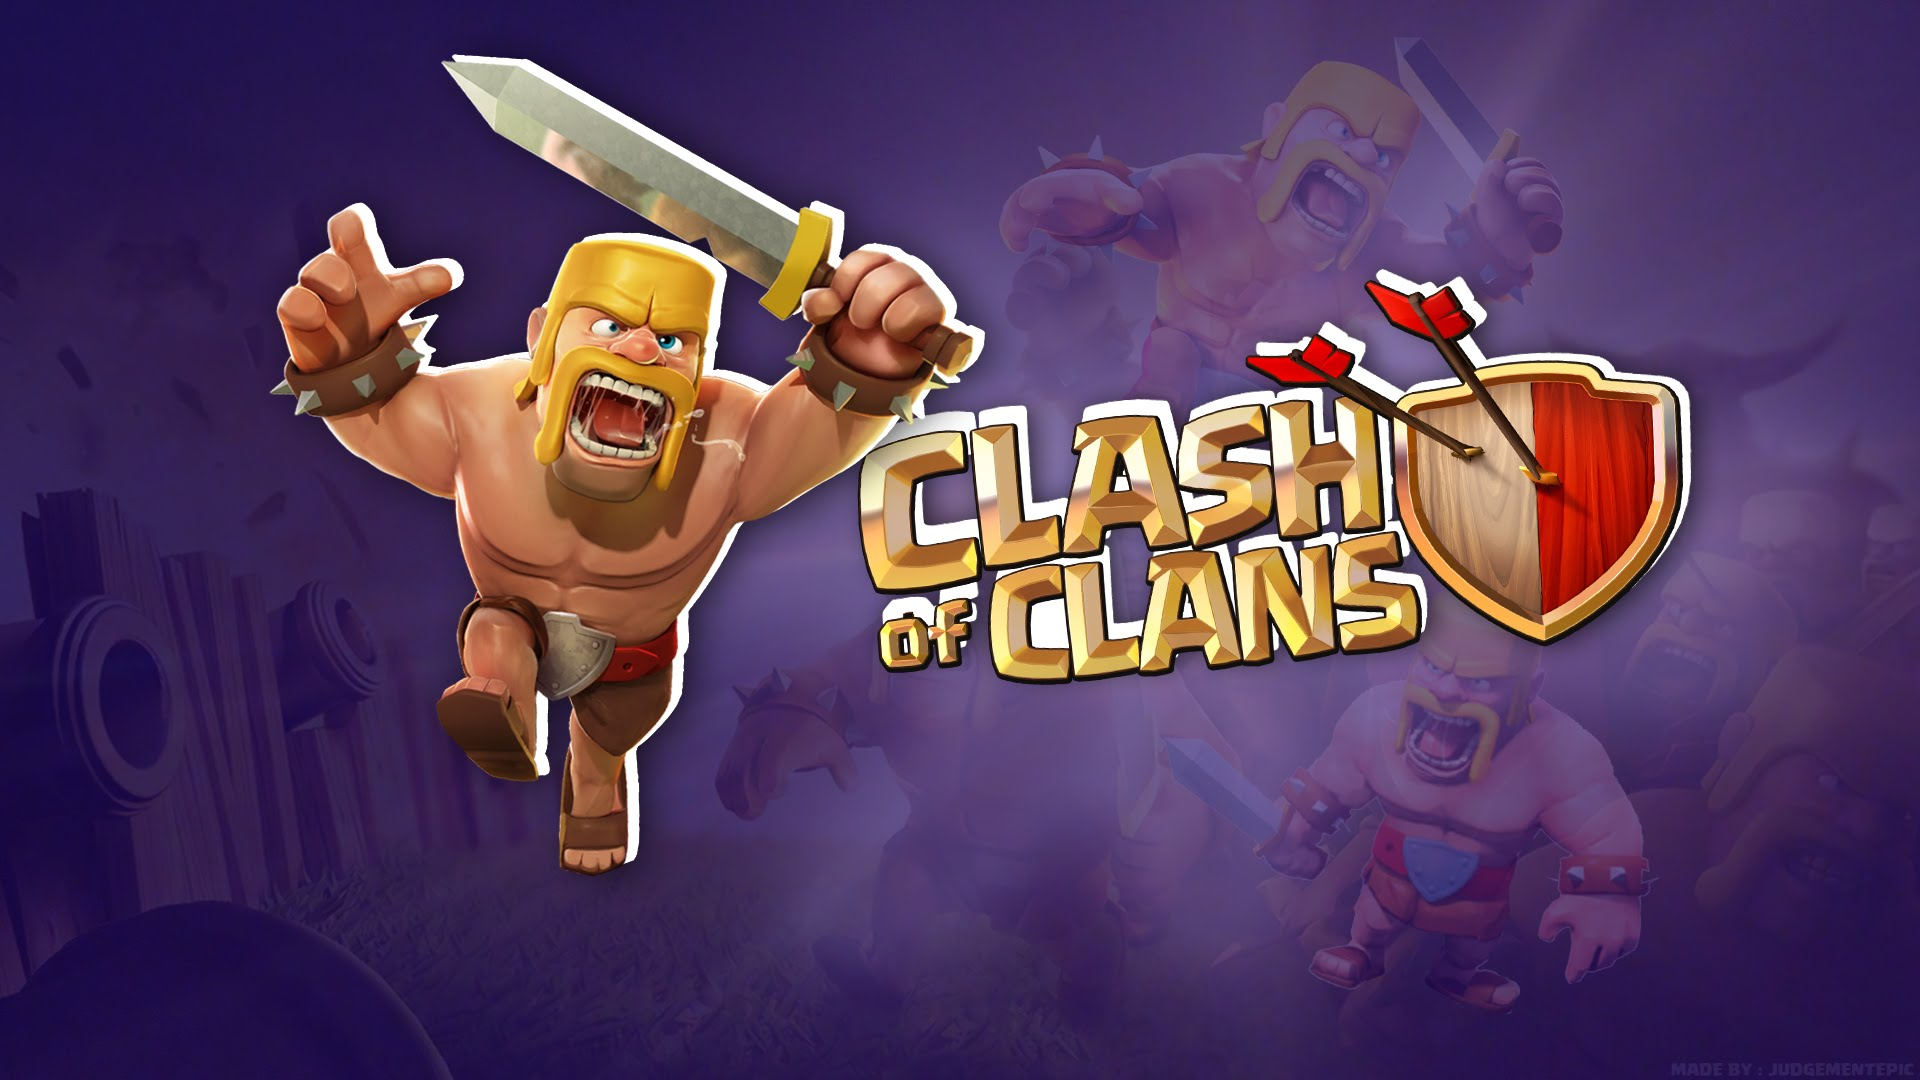 Clash of Clans Wallpapers Best Wallpapers 1920x1080